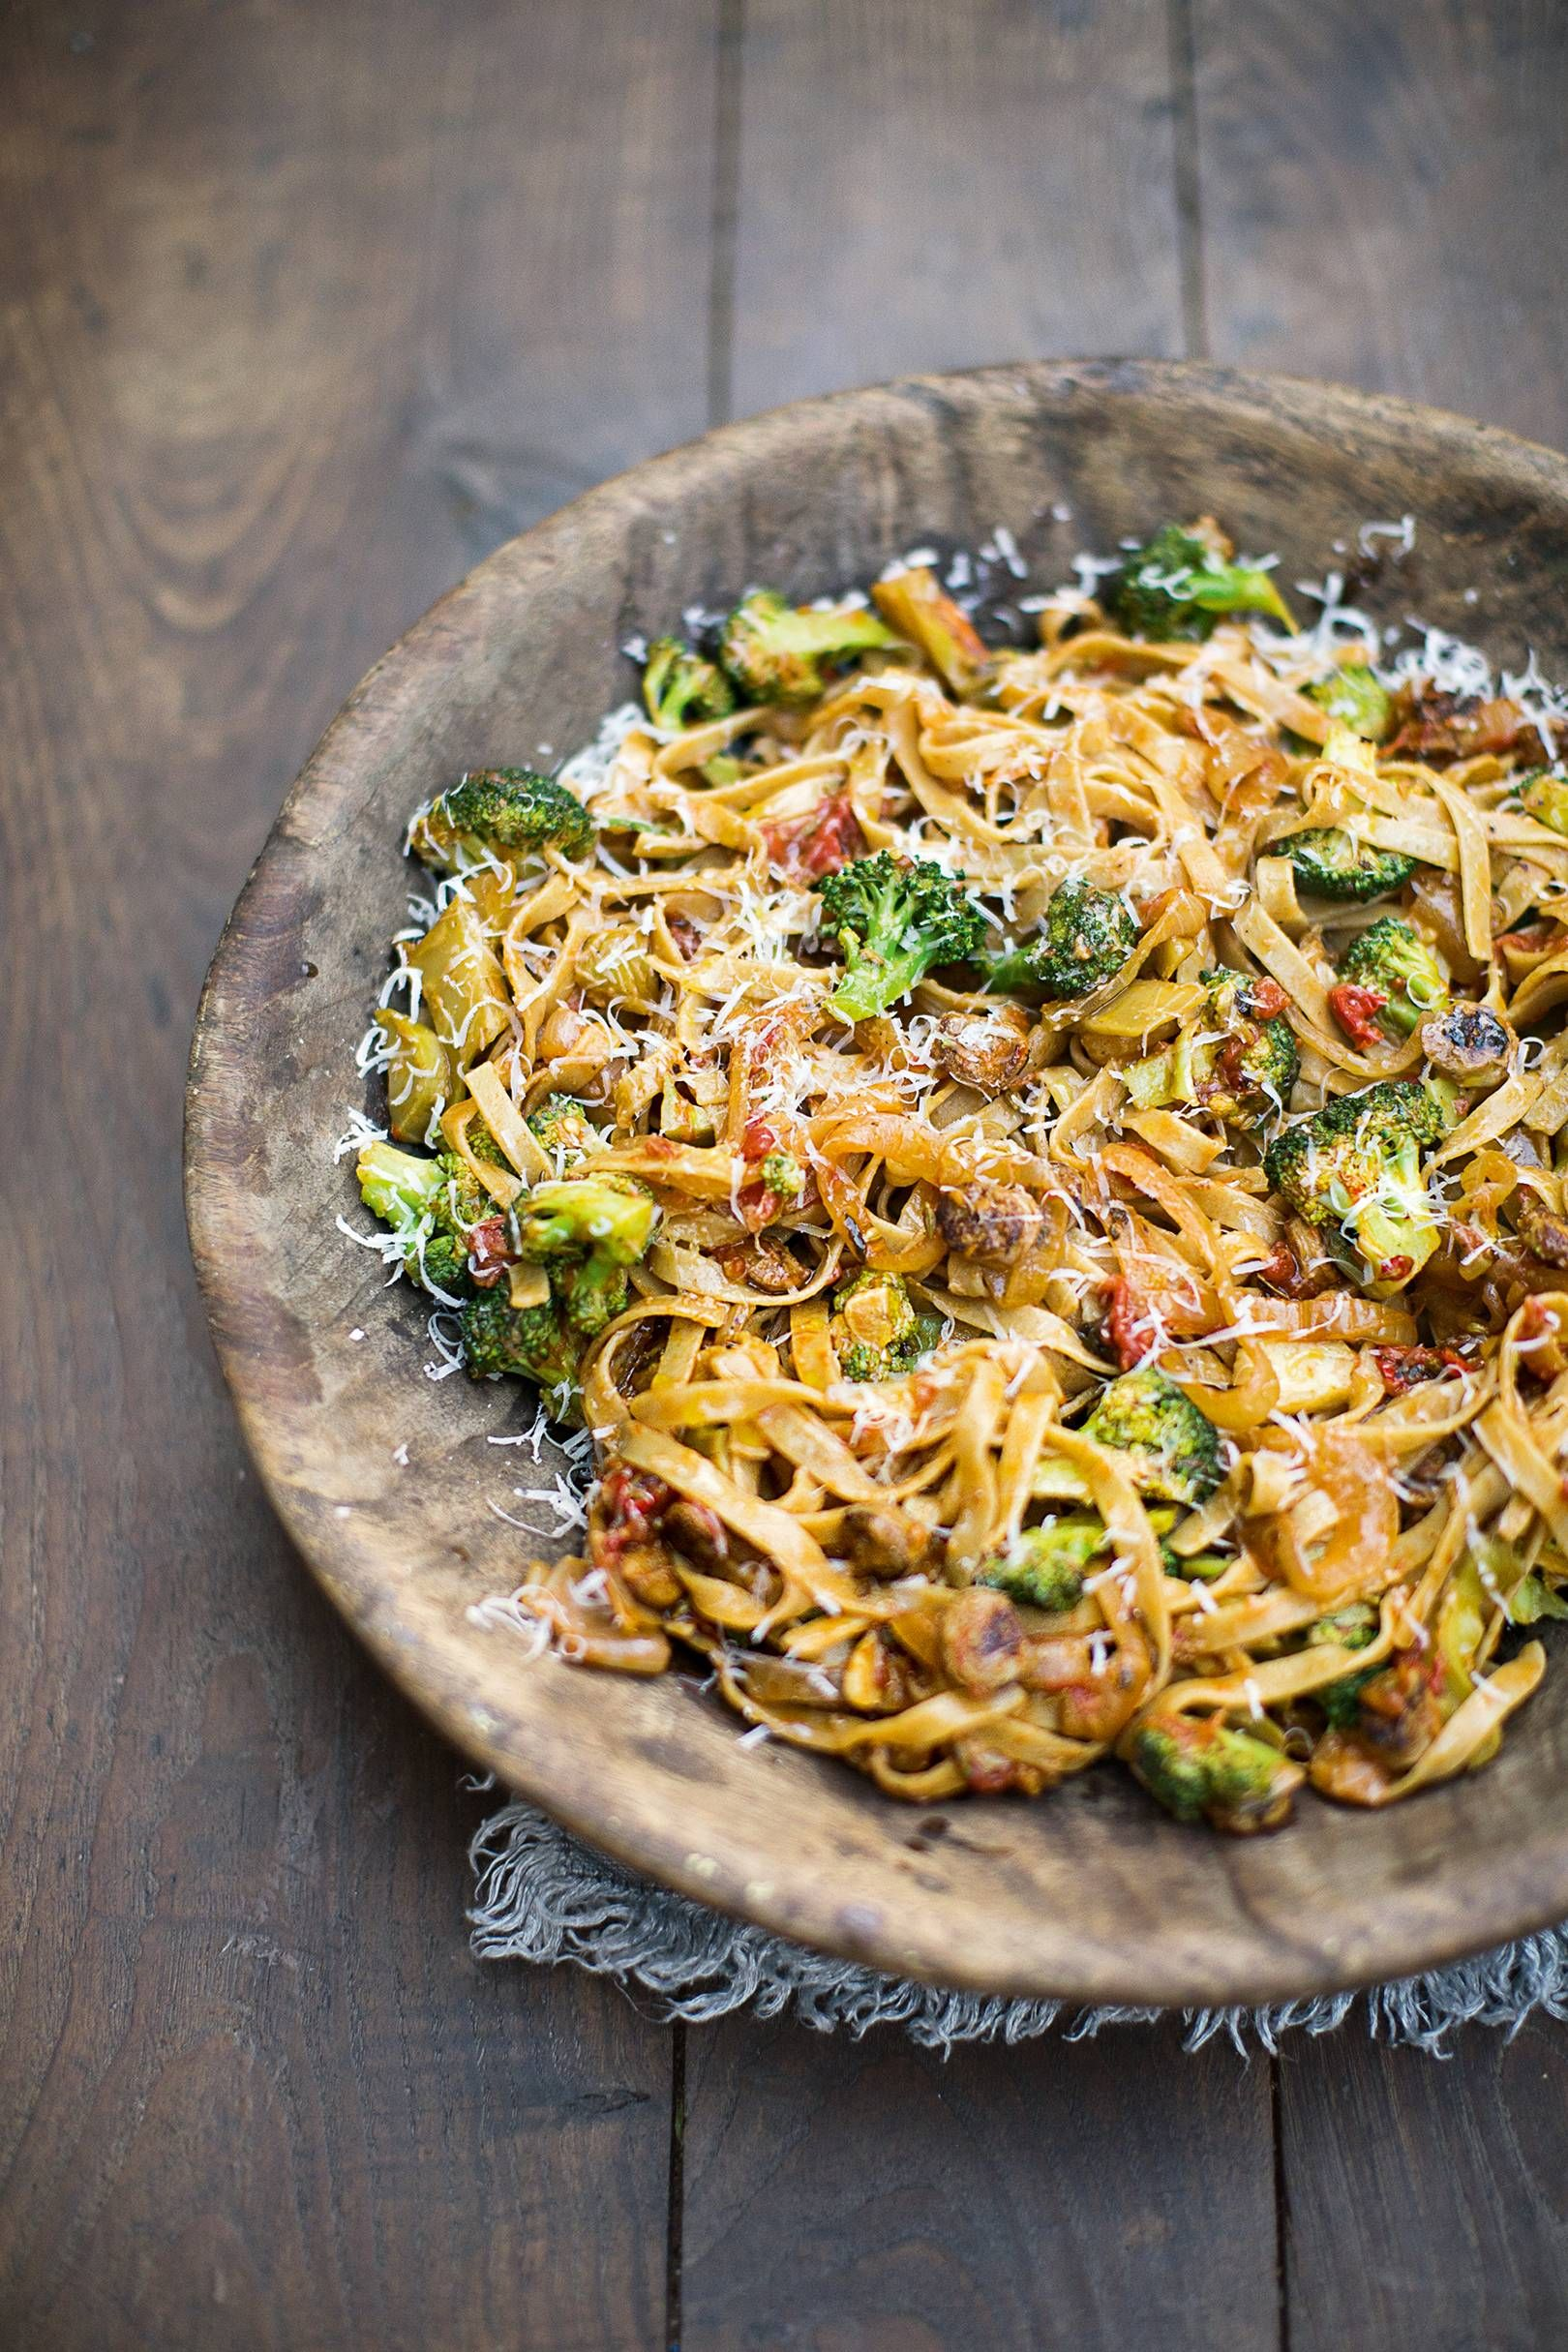 Sausage Pasta With Broccoli Chilli And Tomatoes By Jamie Oliver Recipe Pasta Recipes Sausage Pasta Jamie Oliver Sausage Pasta